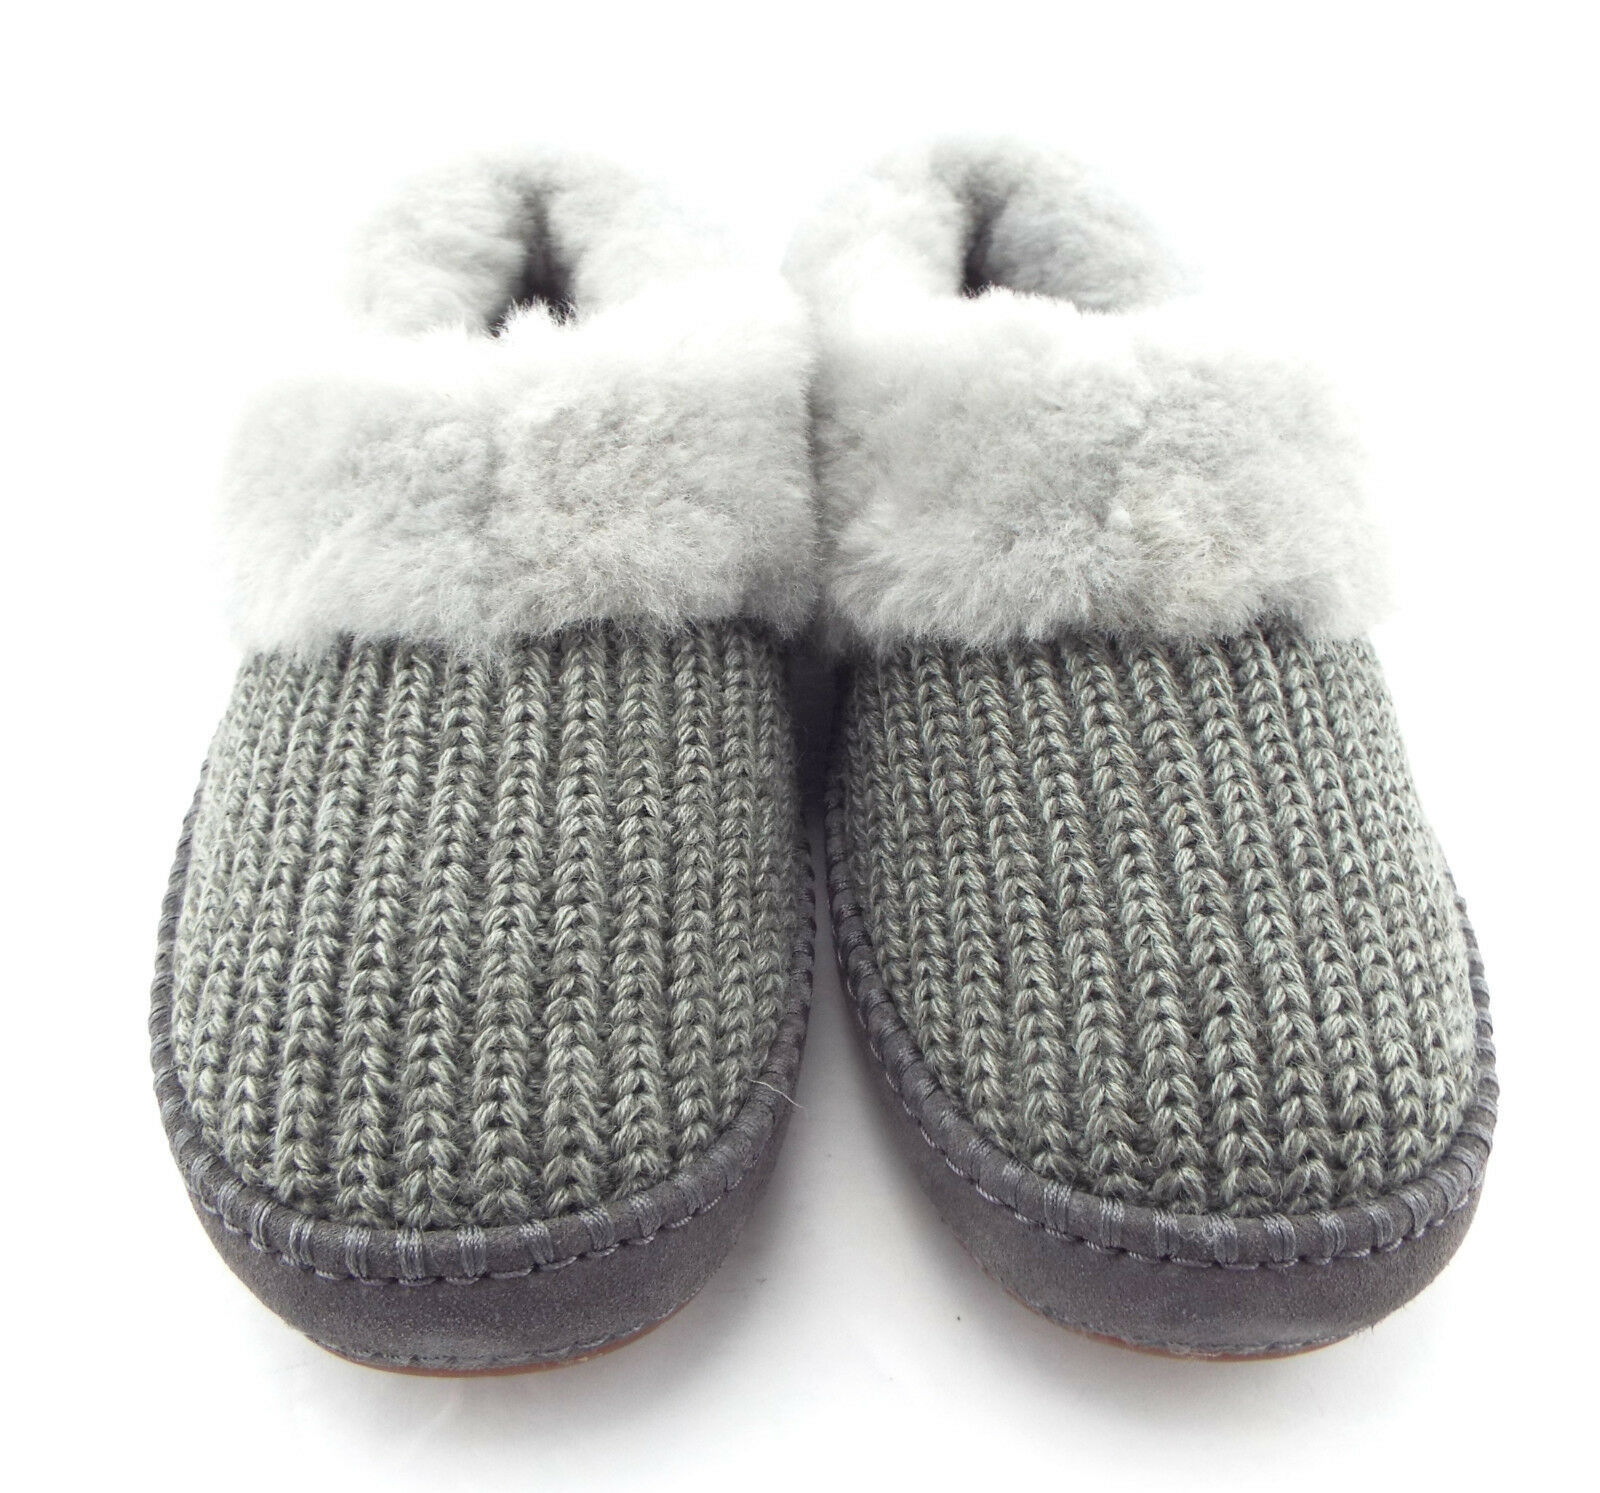 4183ad896e4 New UGG Size 11 WRIN Gray Knit Slippers w/ and 50 similar items